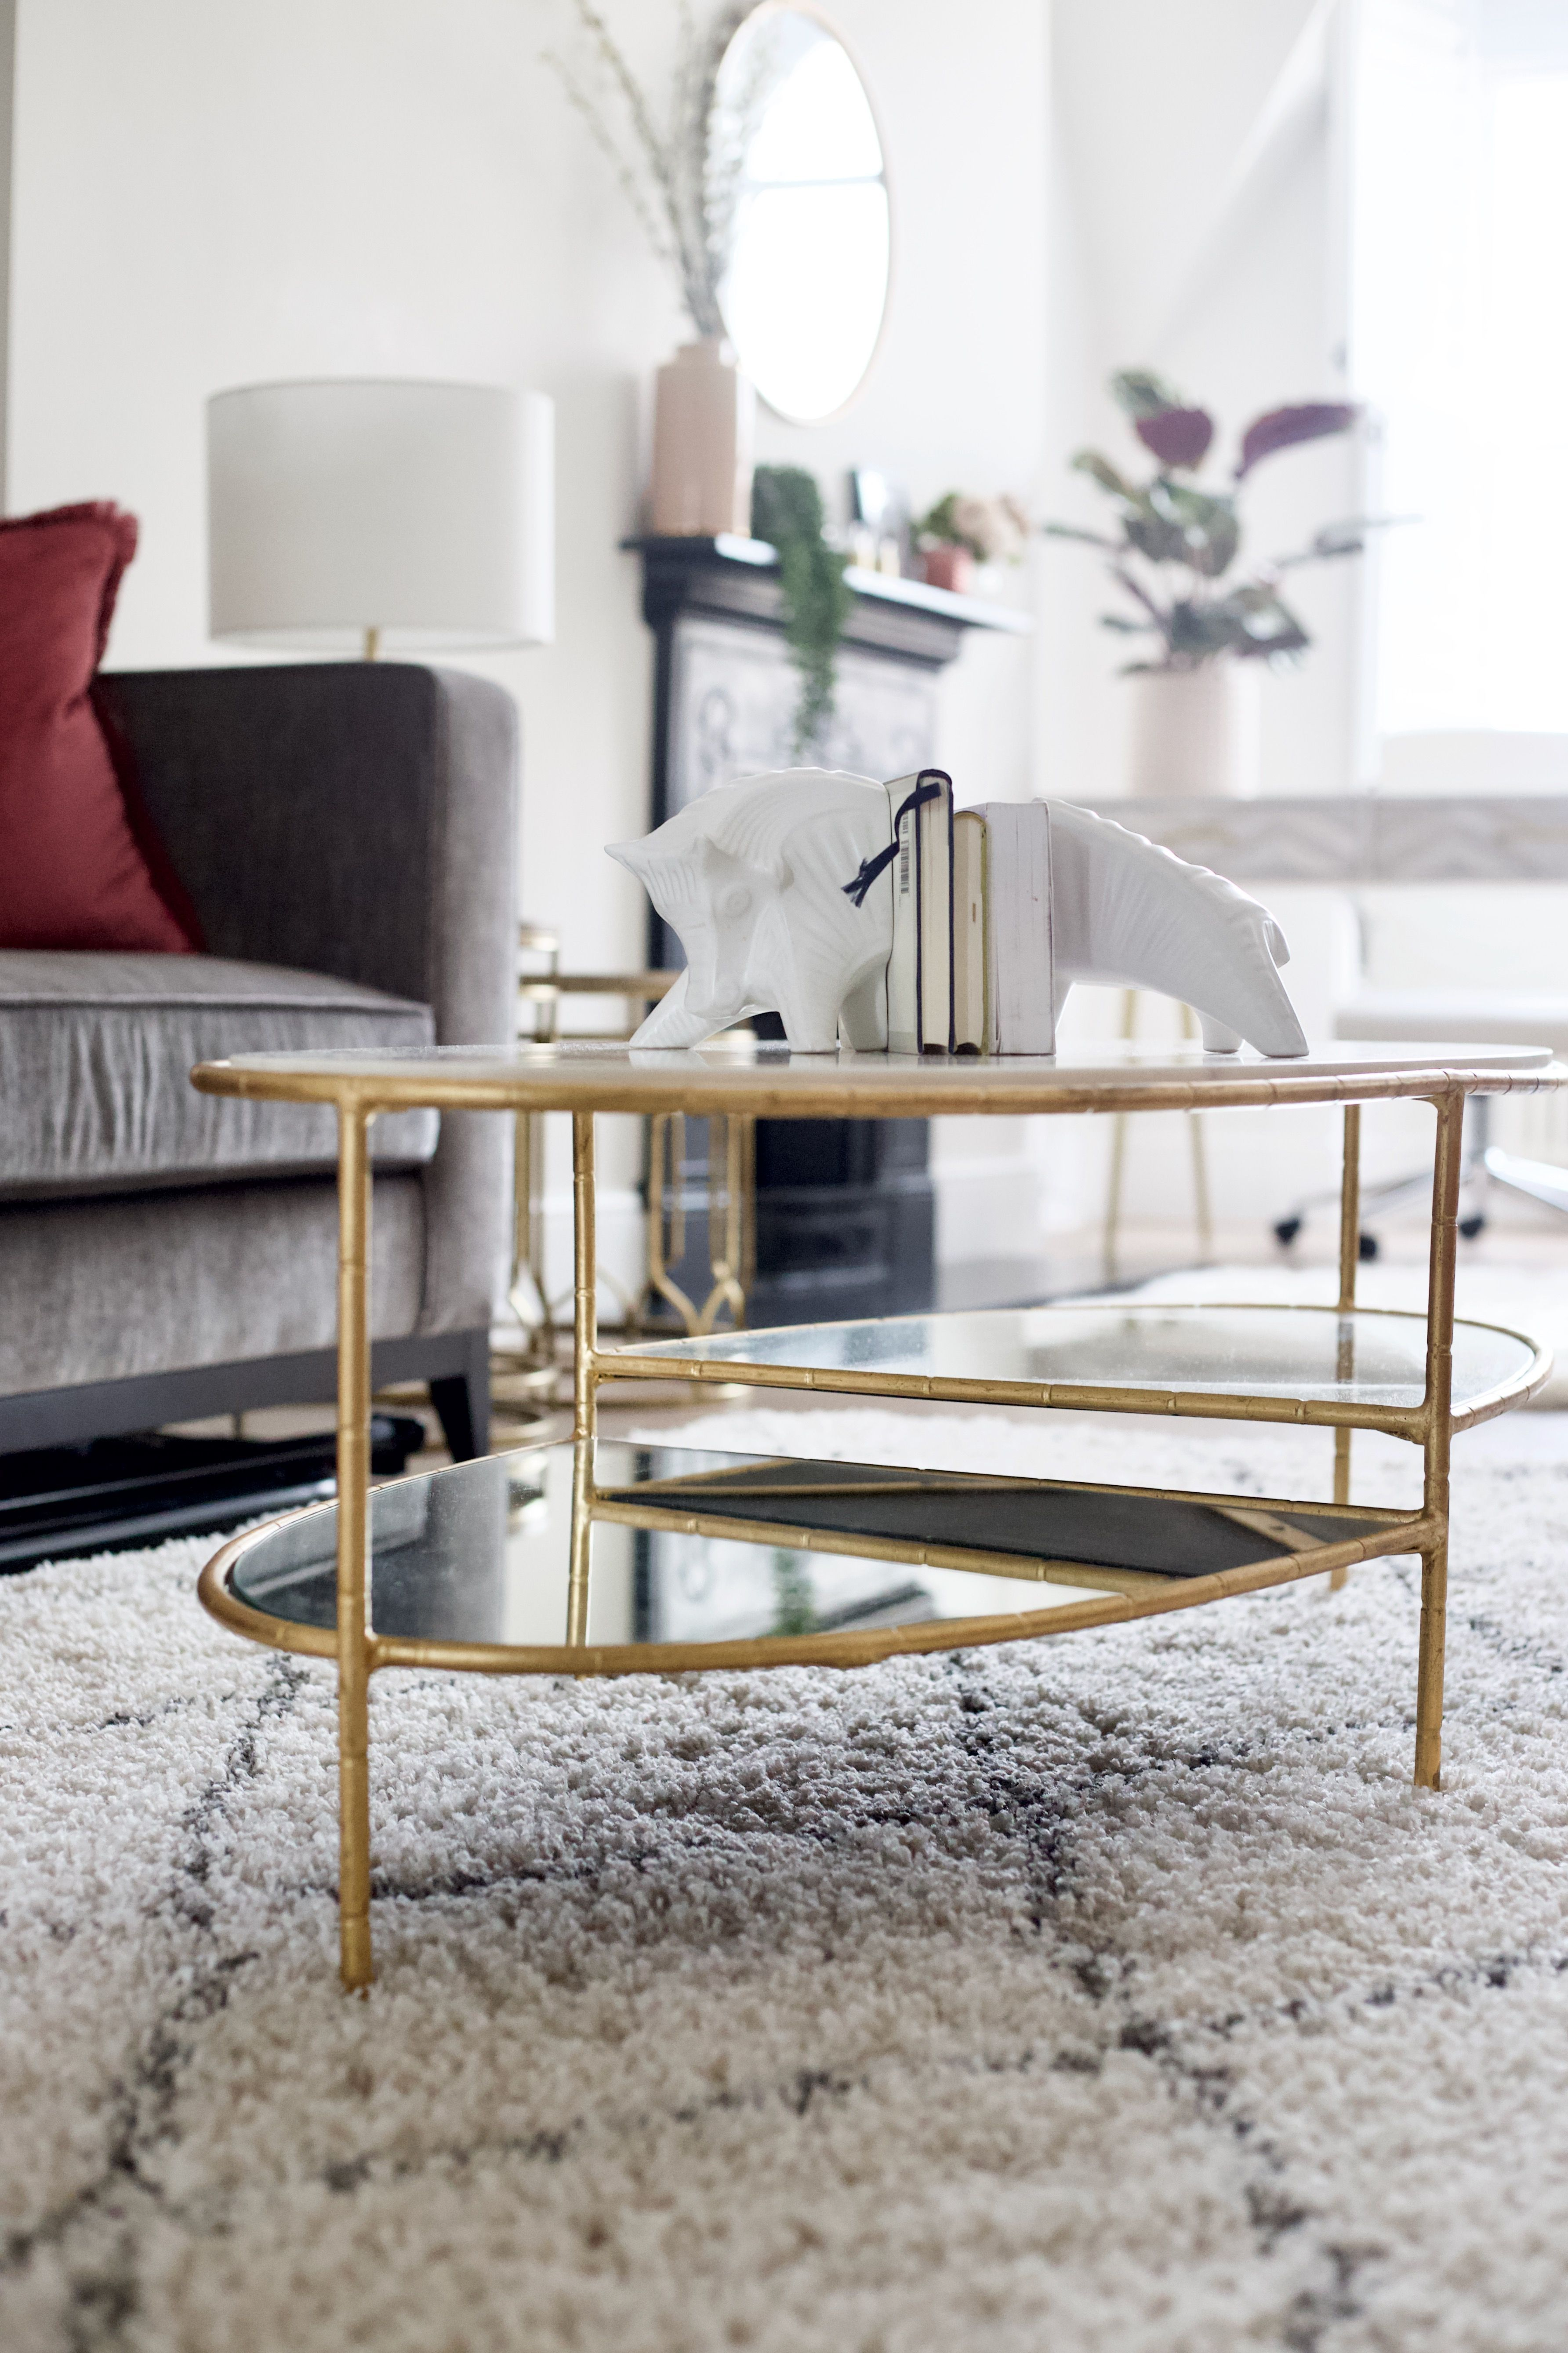 18 High Quality Oval Glass Coffee Table Interior Design Ideas A Glass Coffee Table Is A Part Oval Glass Dining Room Table Coffee Table Glass Dining Room Table [ 5353 x 3568 Pixel ]